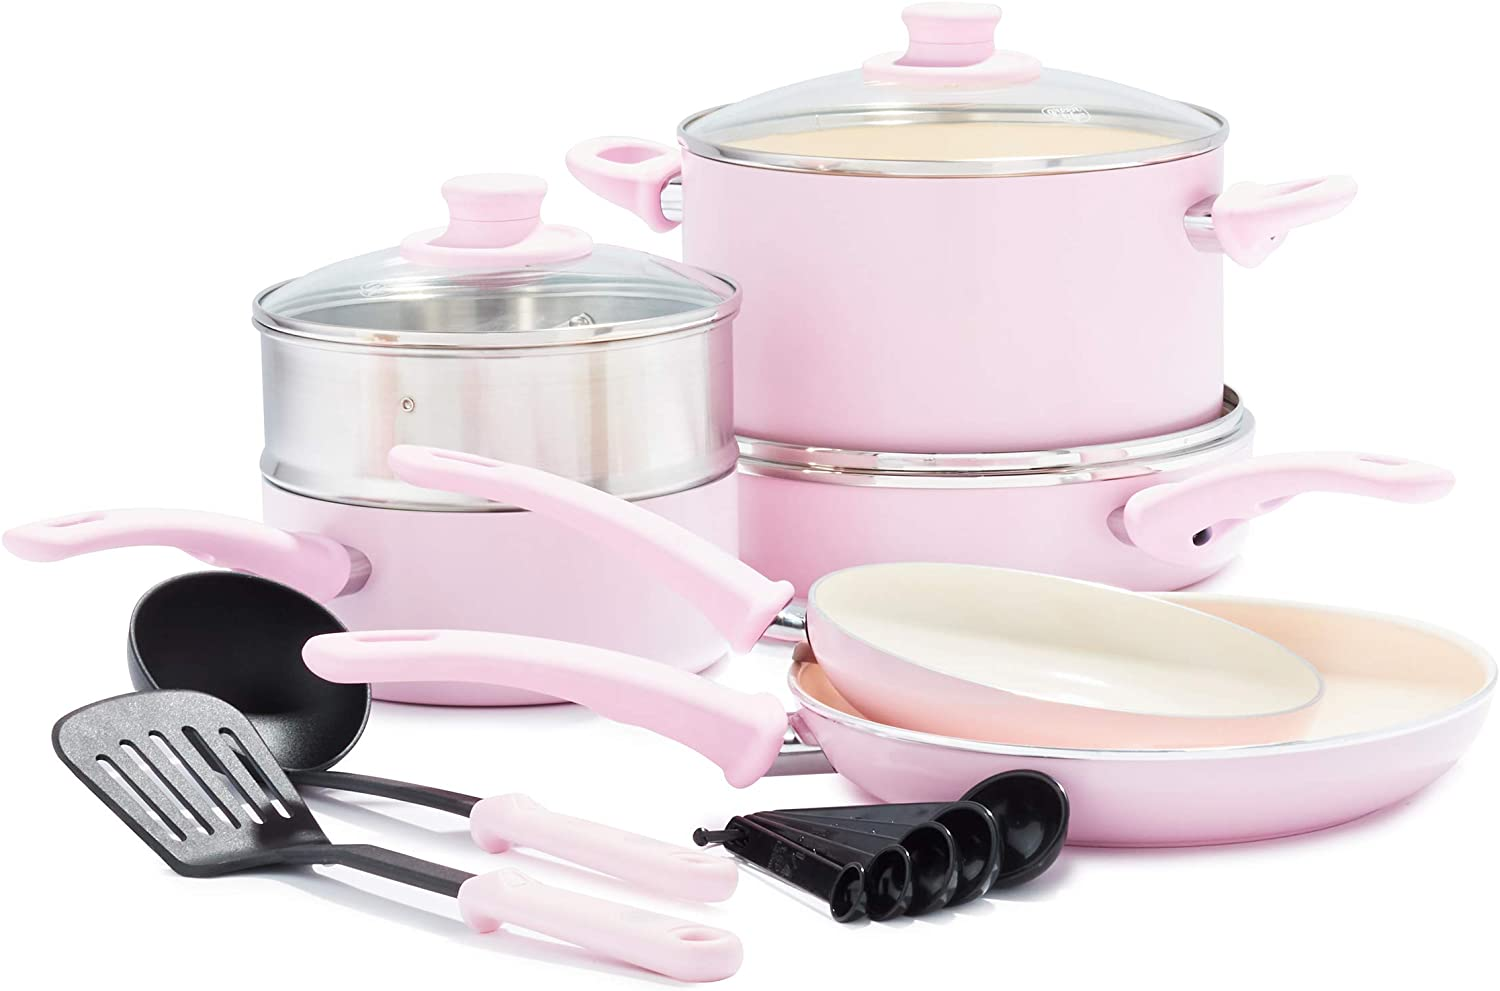 GreenLife 12 Piece in pink